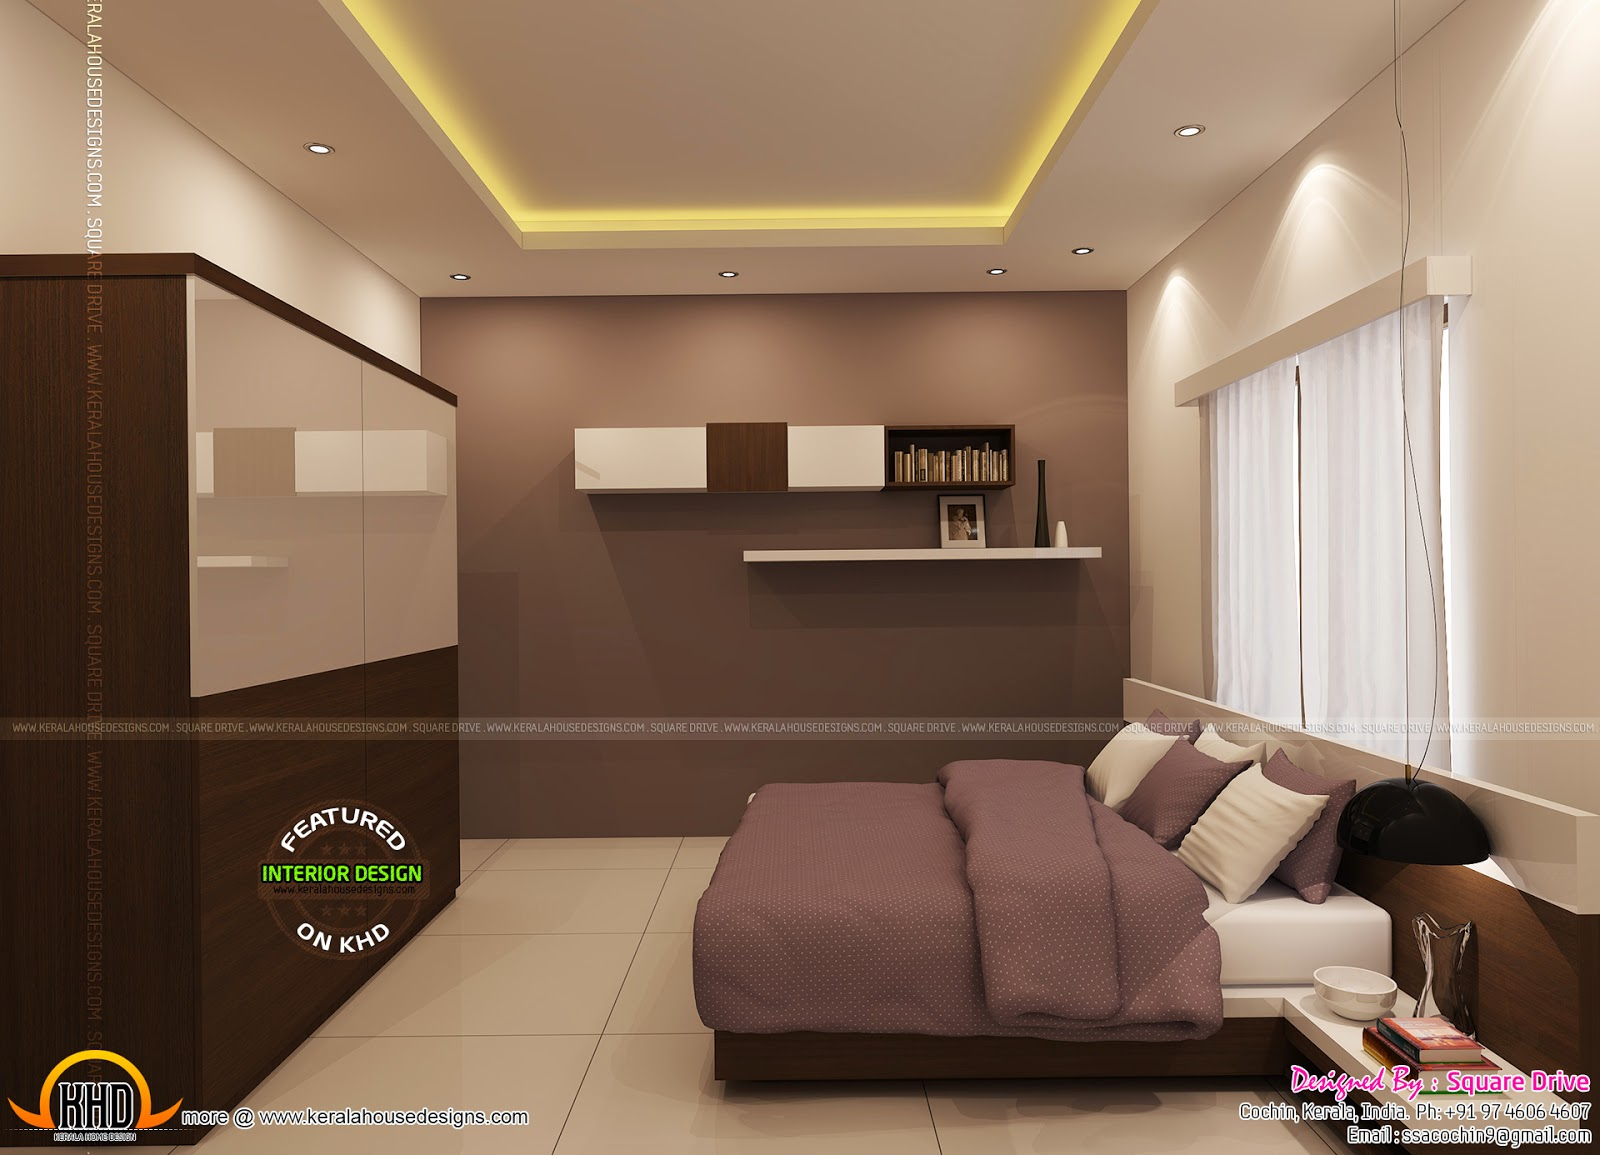 Bedroom interior designs kerala home design and floor plans for Kerala homes interior designs